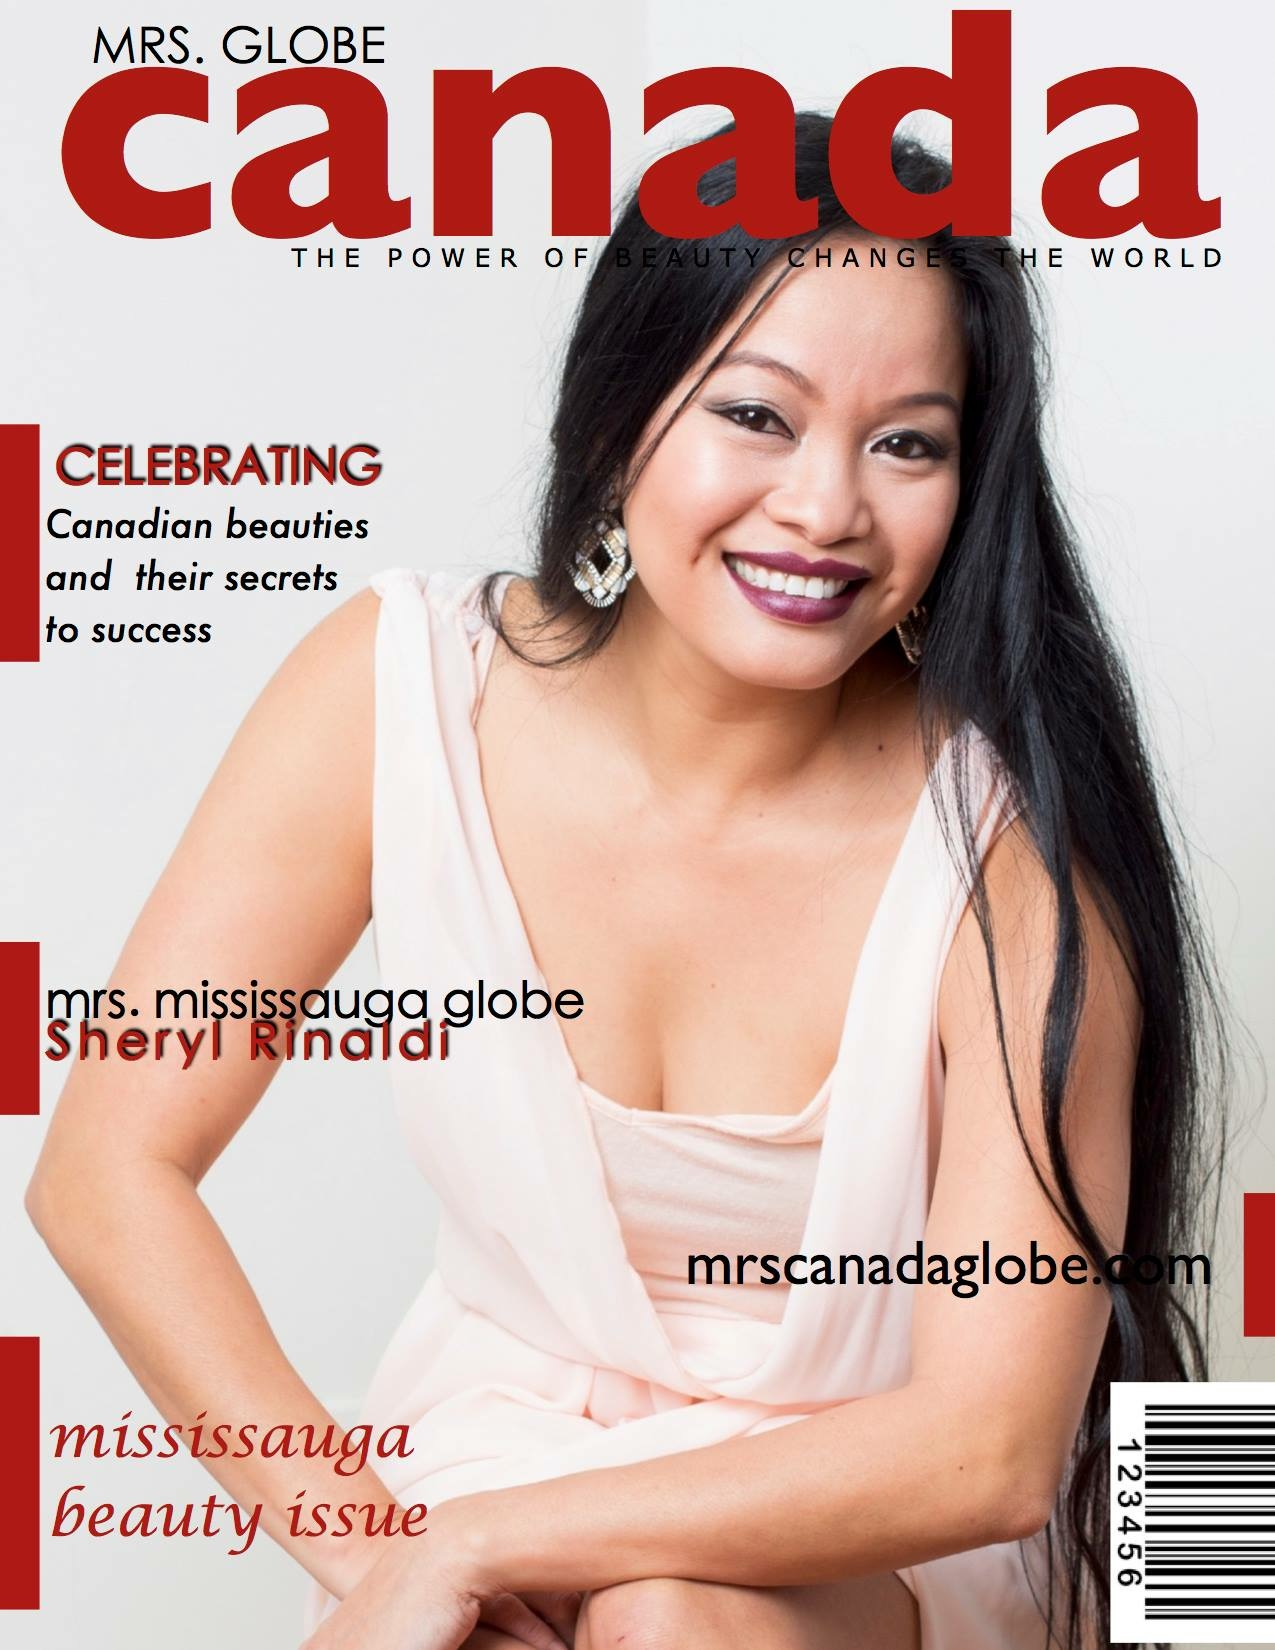 Mrs. Globe Magazine Cover Featuring Sheryl Rinaldi a graduate of National Institute